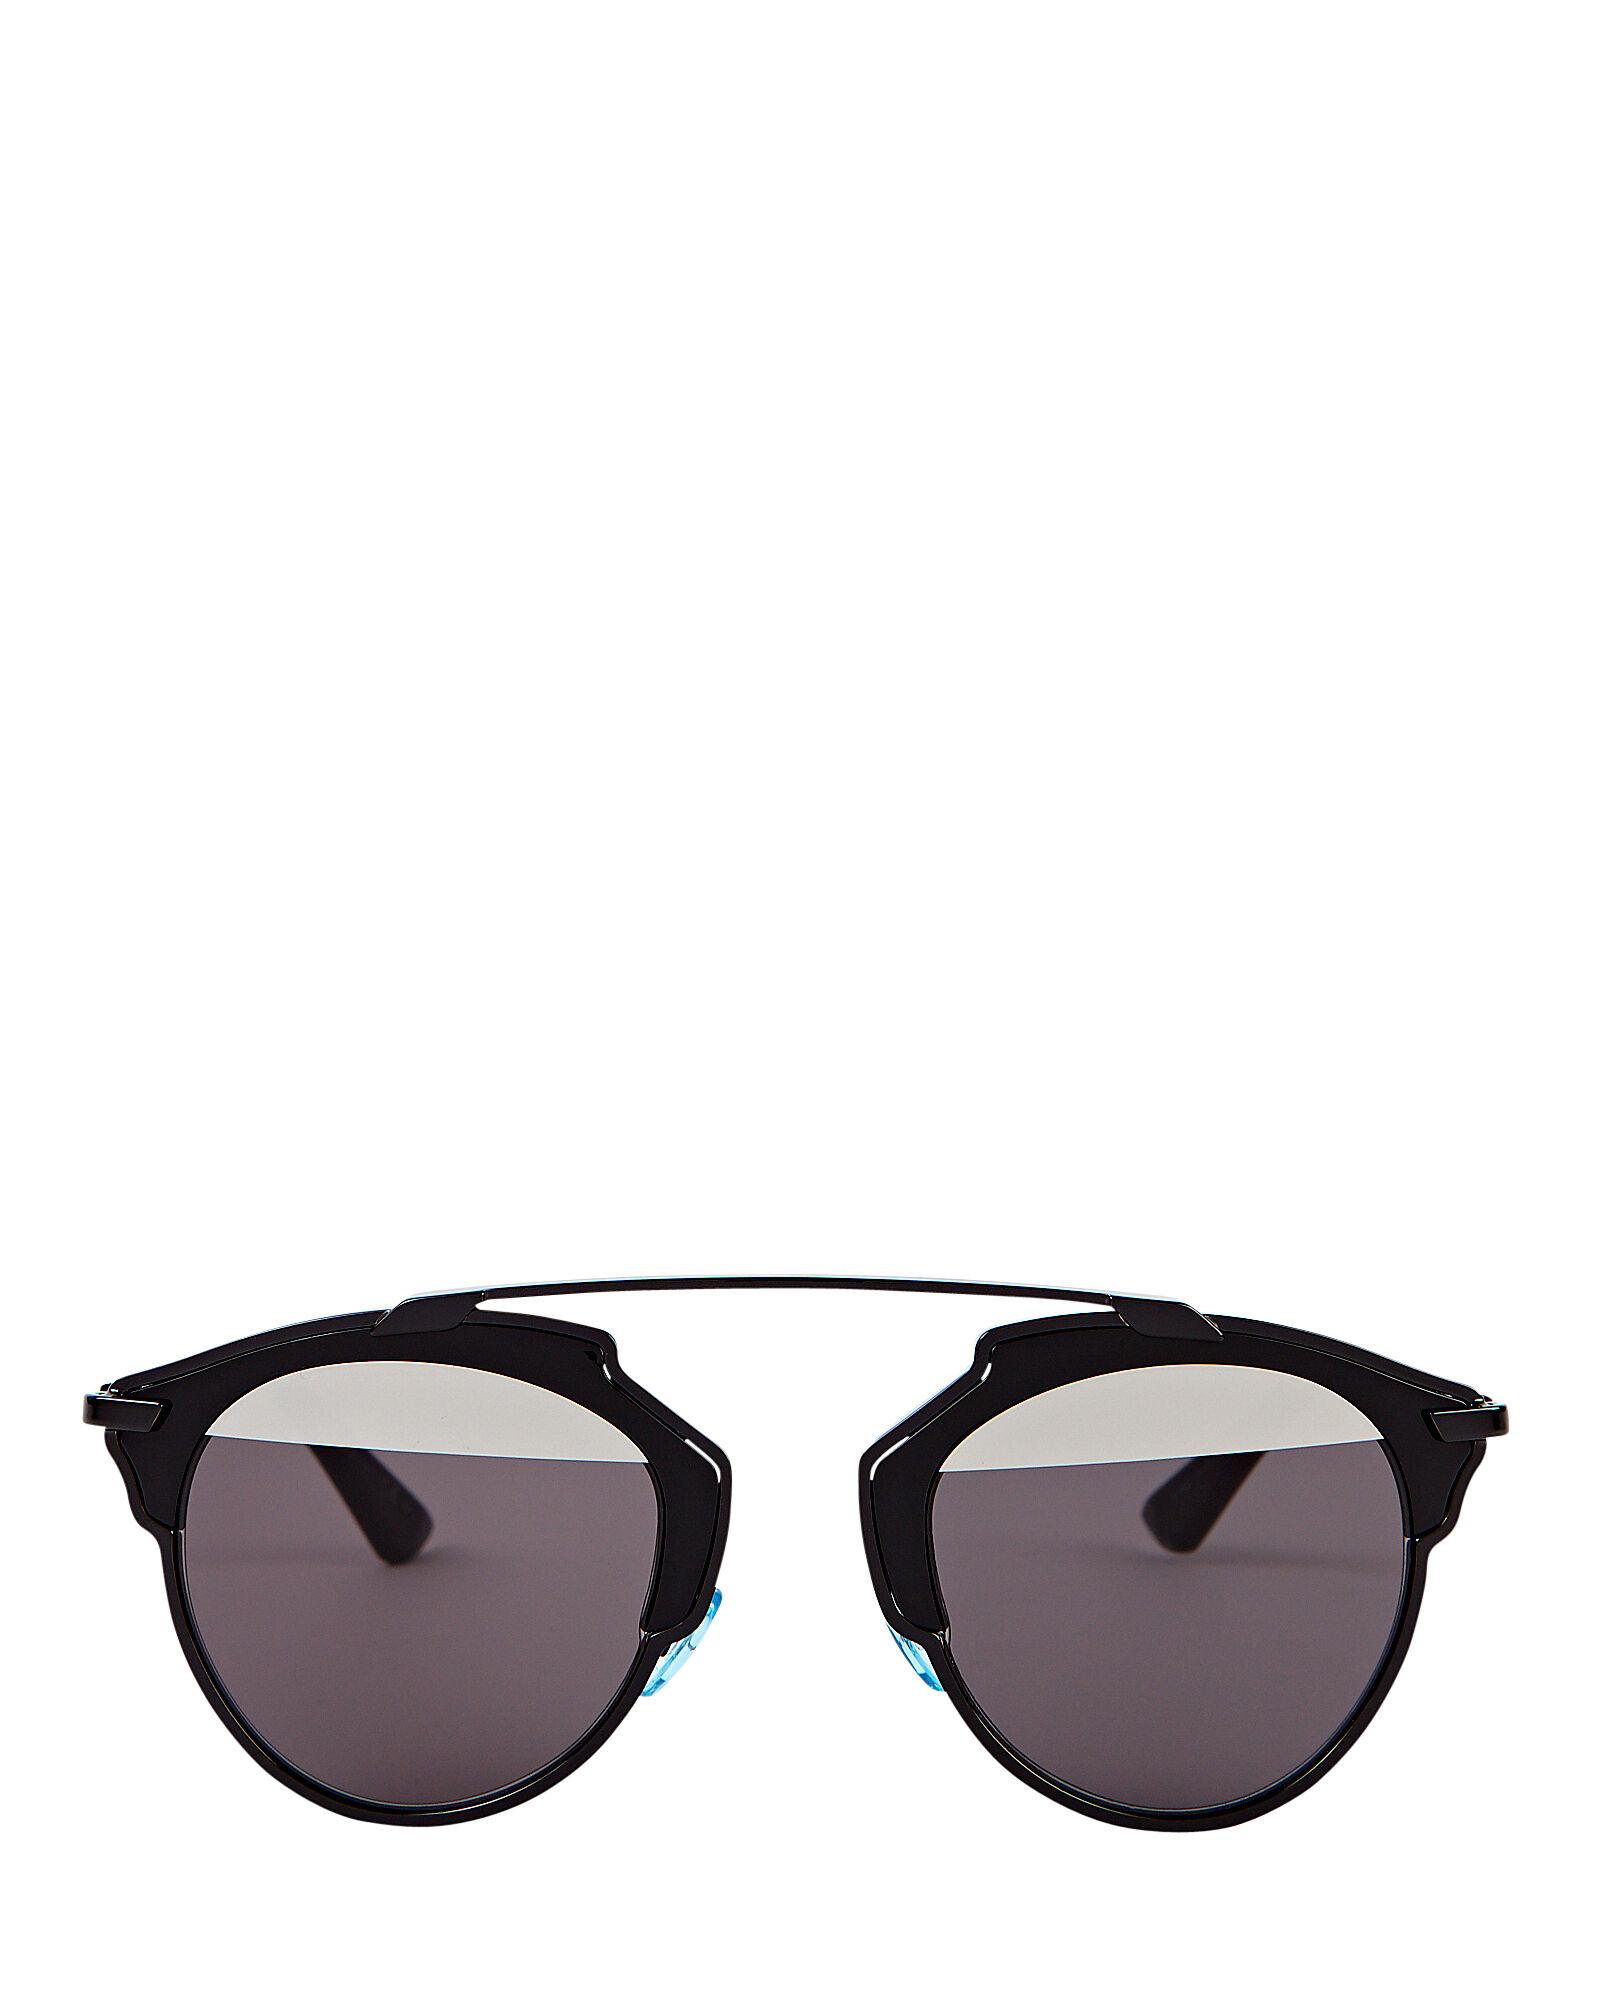 DiorSoReal Sunglasses, BLACK, hi-res